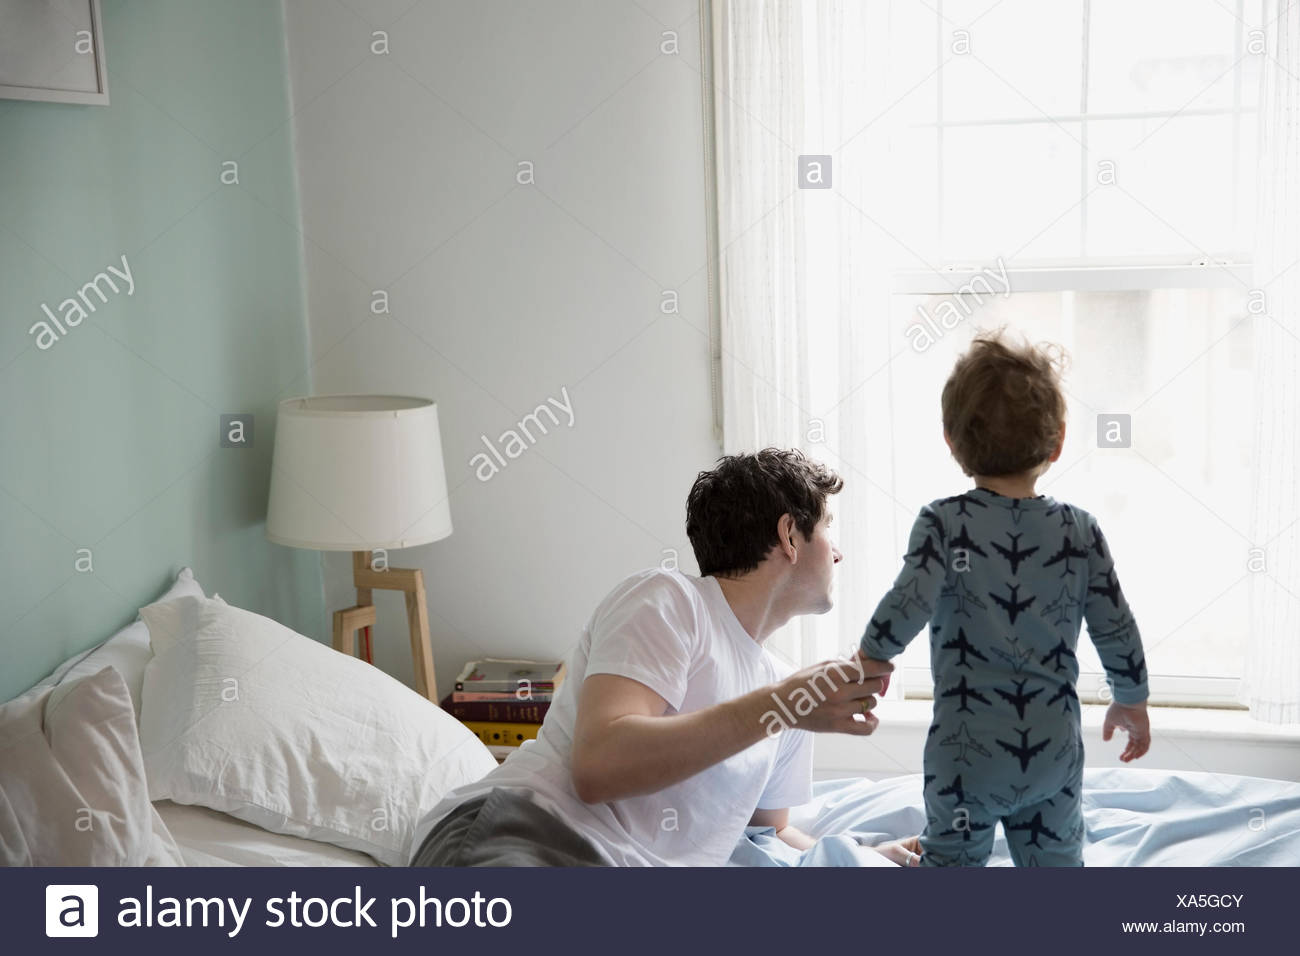 Father and son in pajamas looking out window - Stock Image